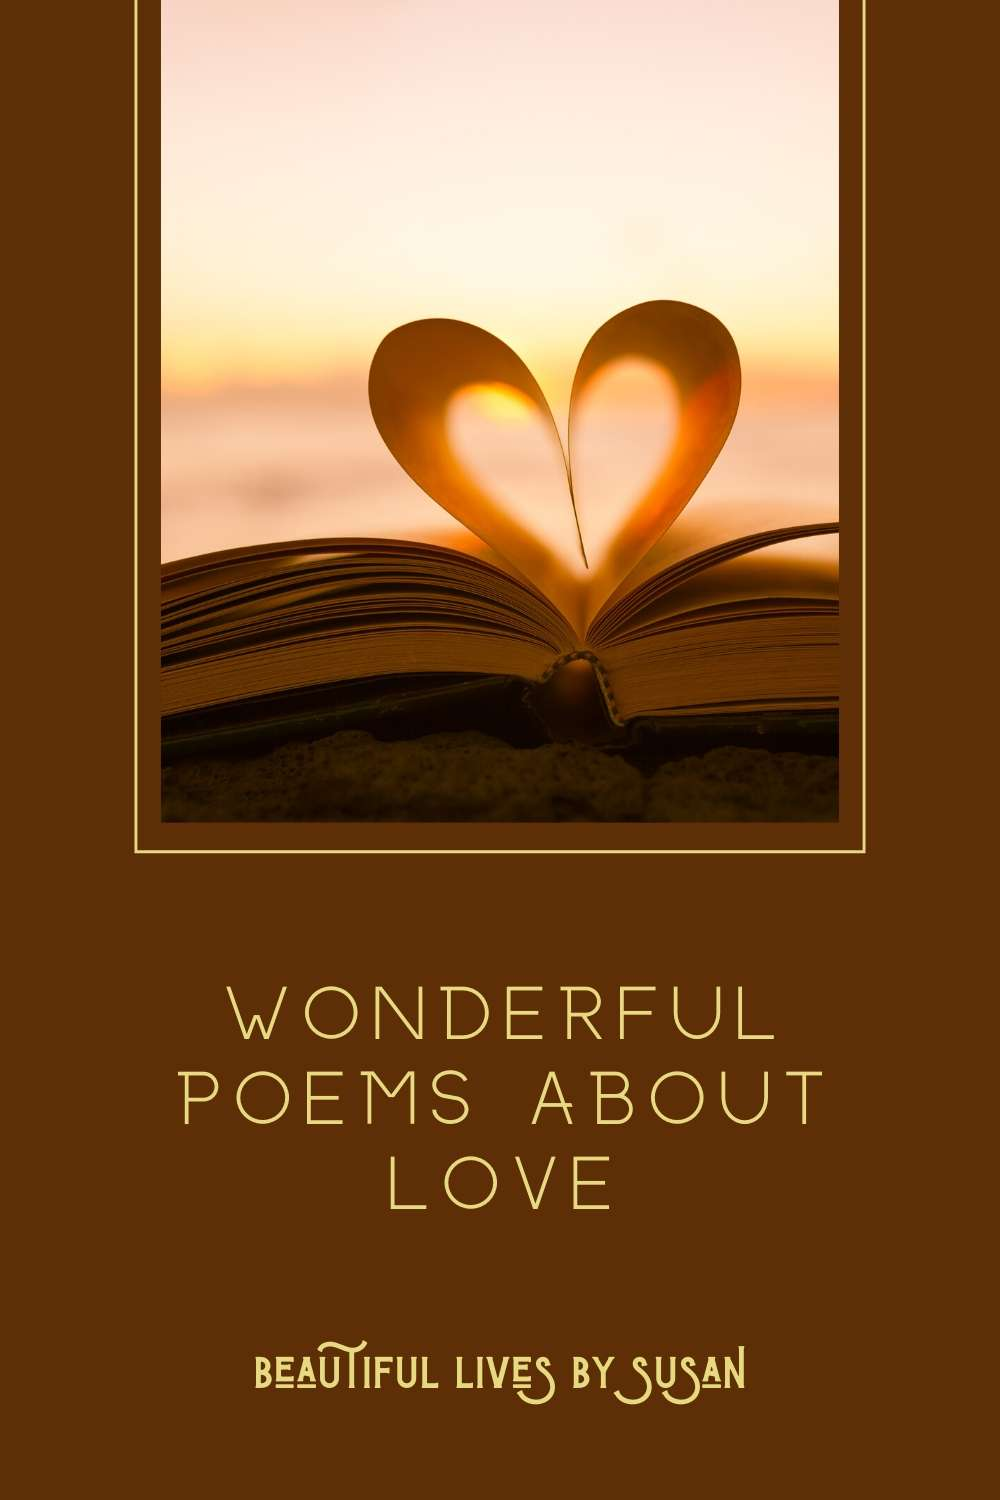 Wonderful Poems About Love